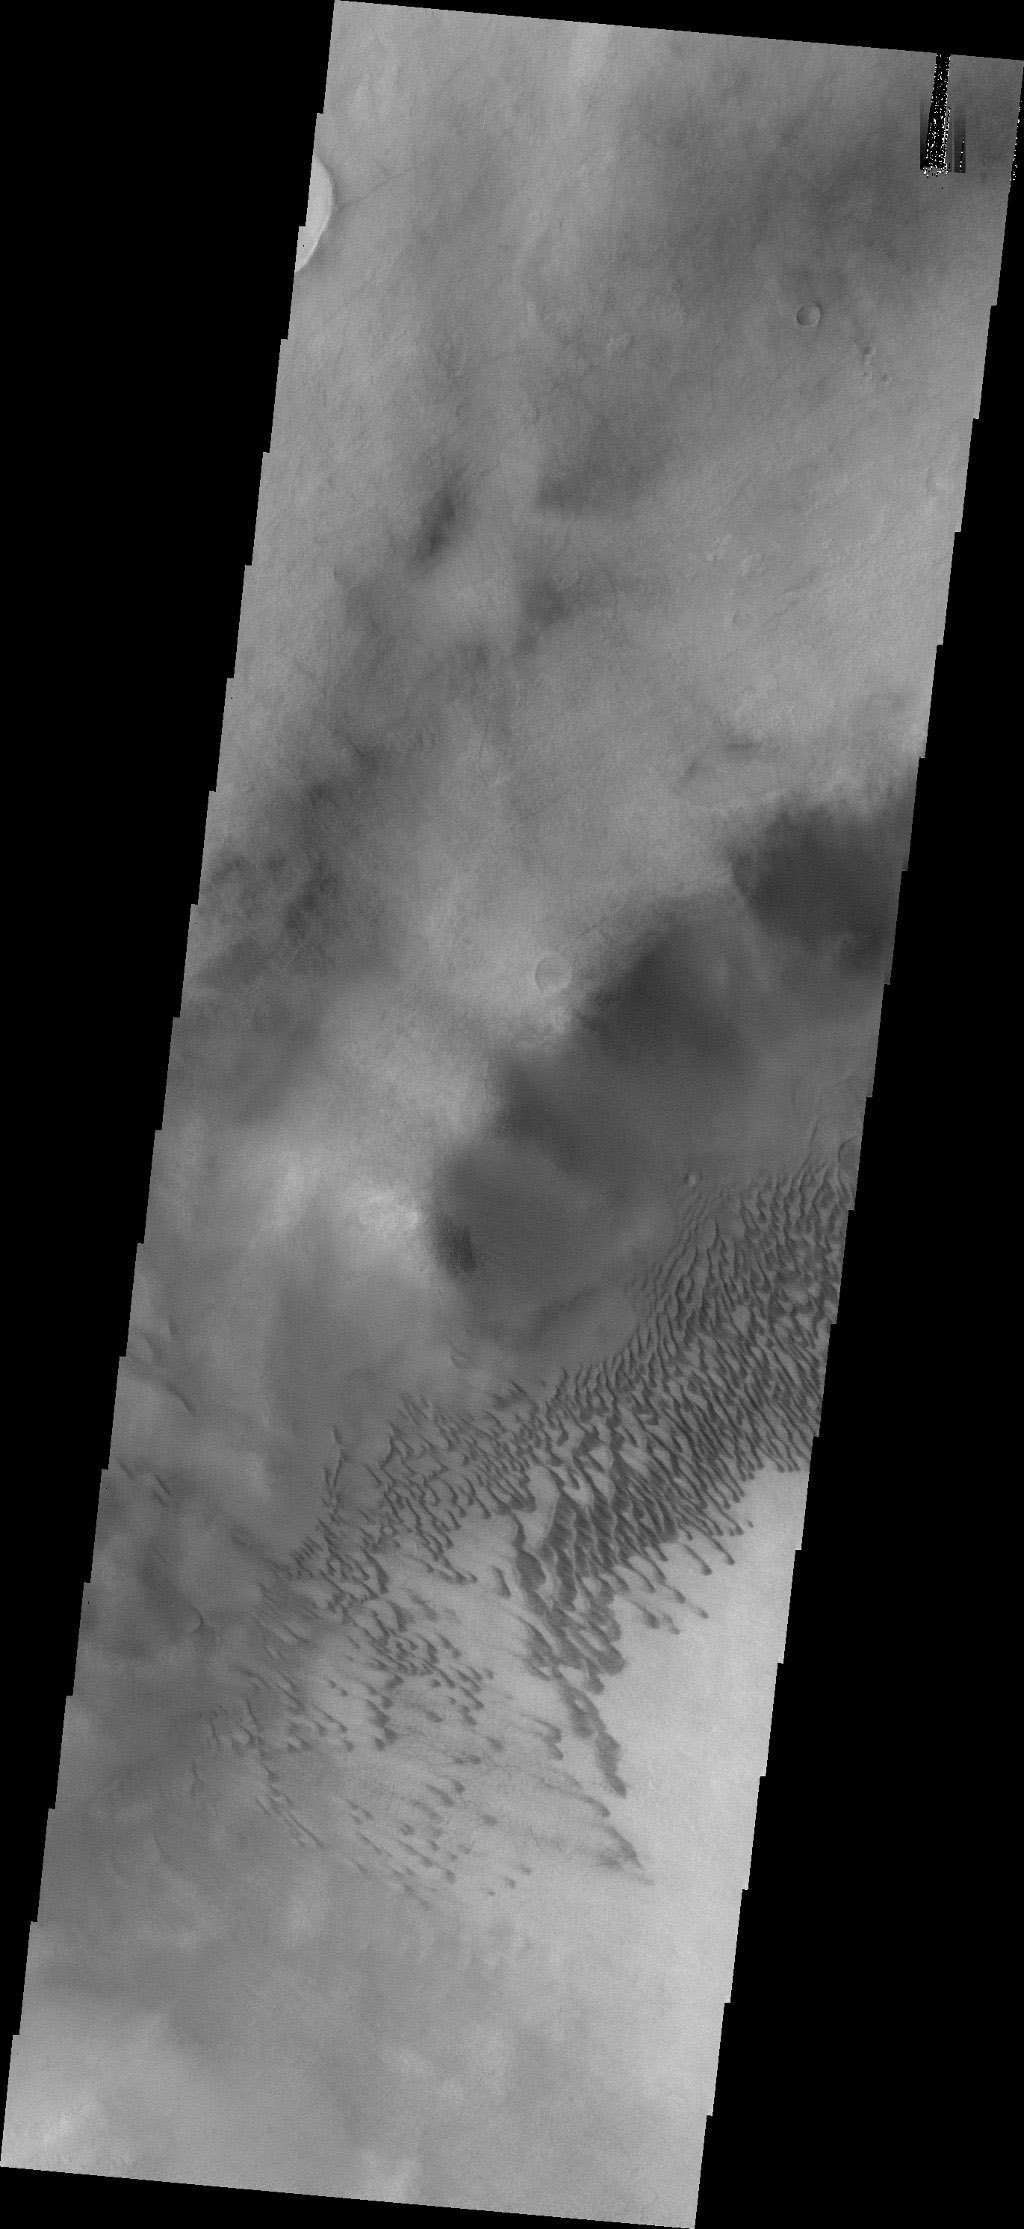 This image captured by NASA's 2001 Mars Odyssey spacecraft shows part of the dune field on the floor of Brashear Crater.